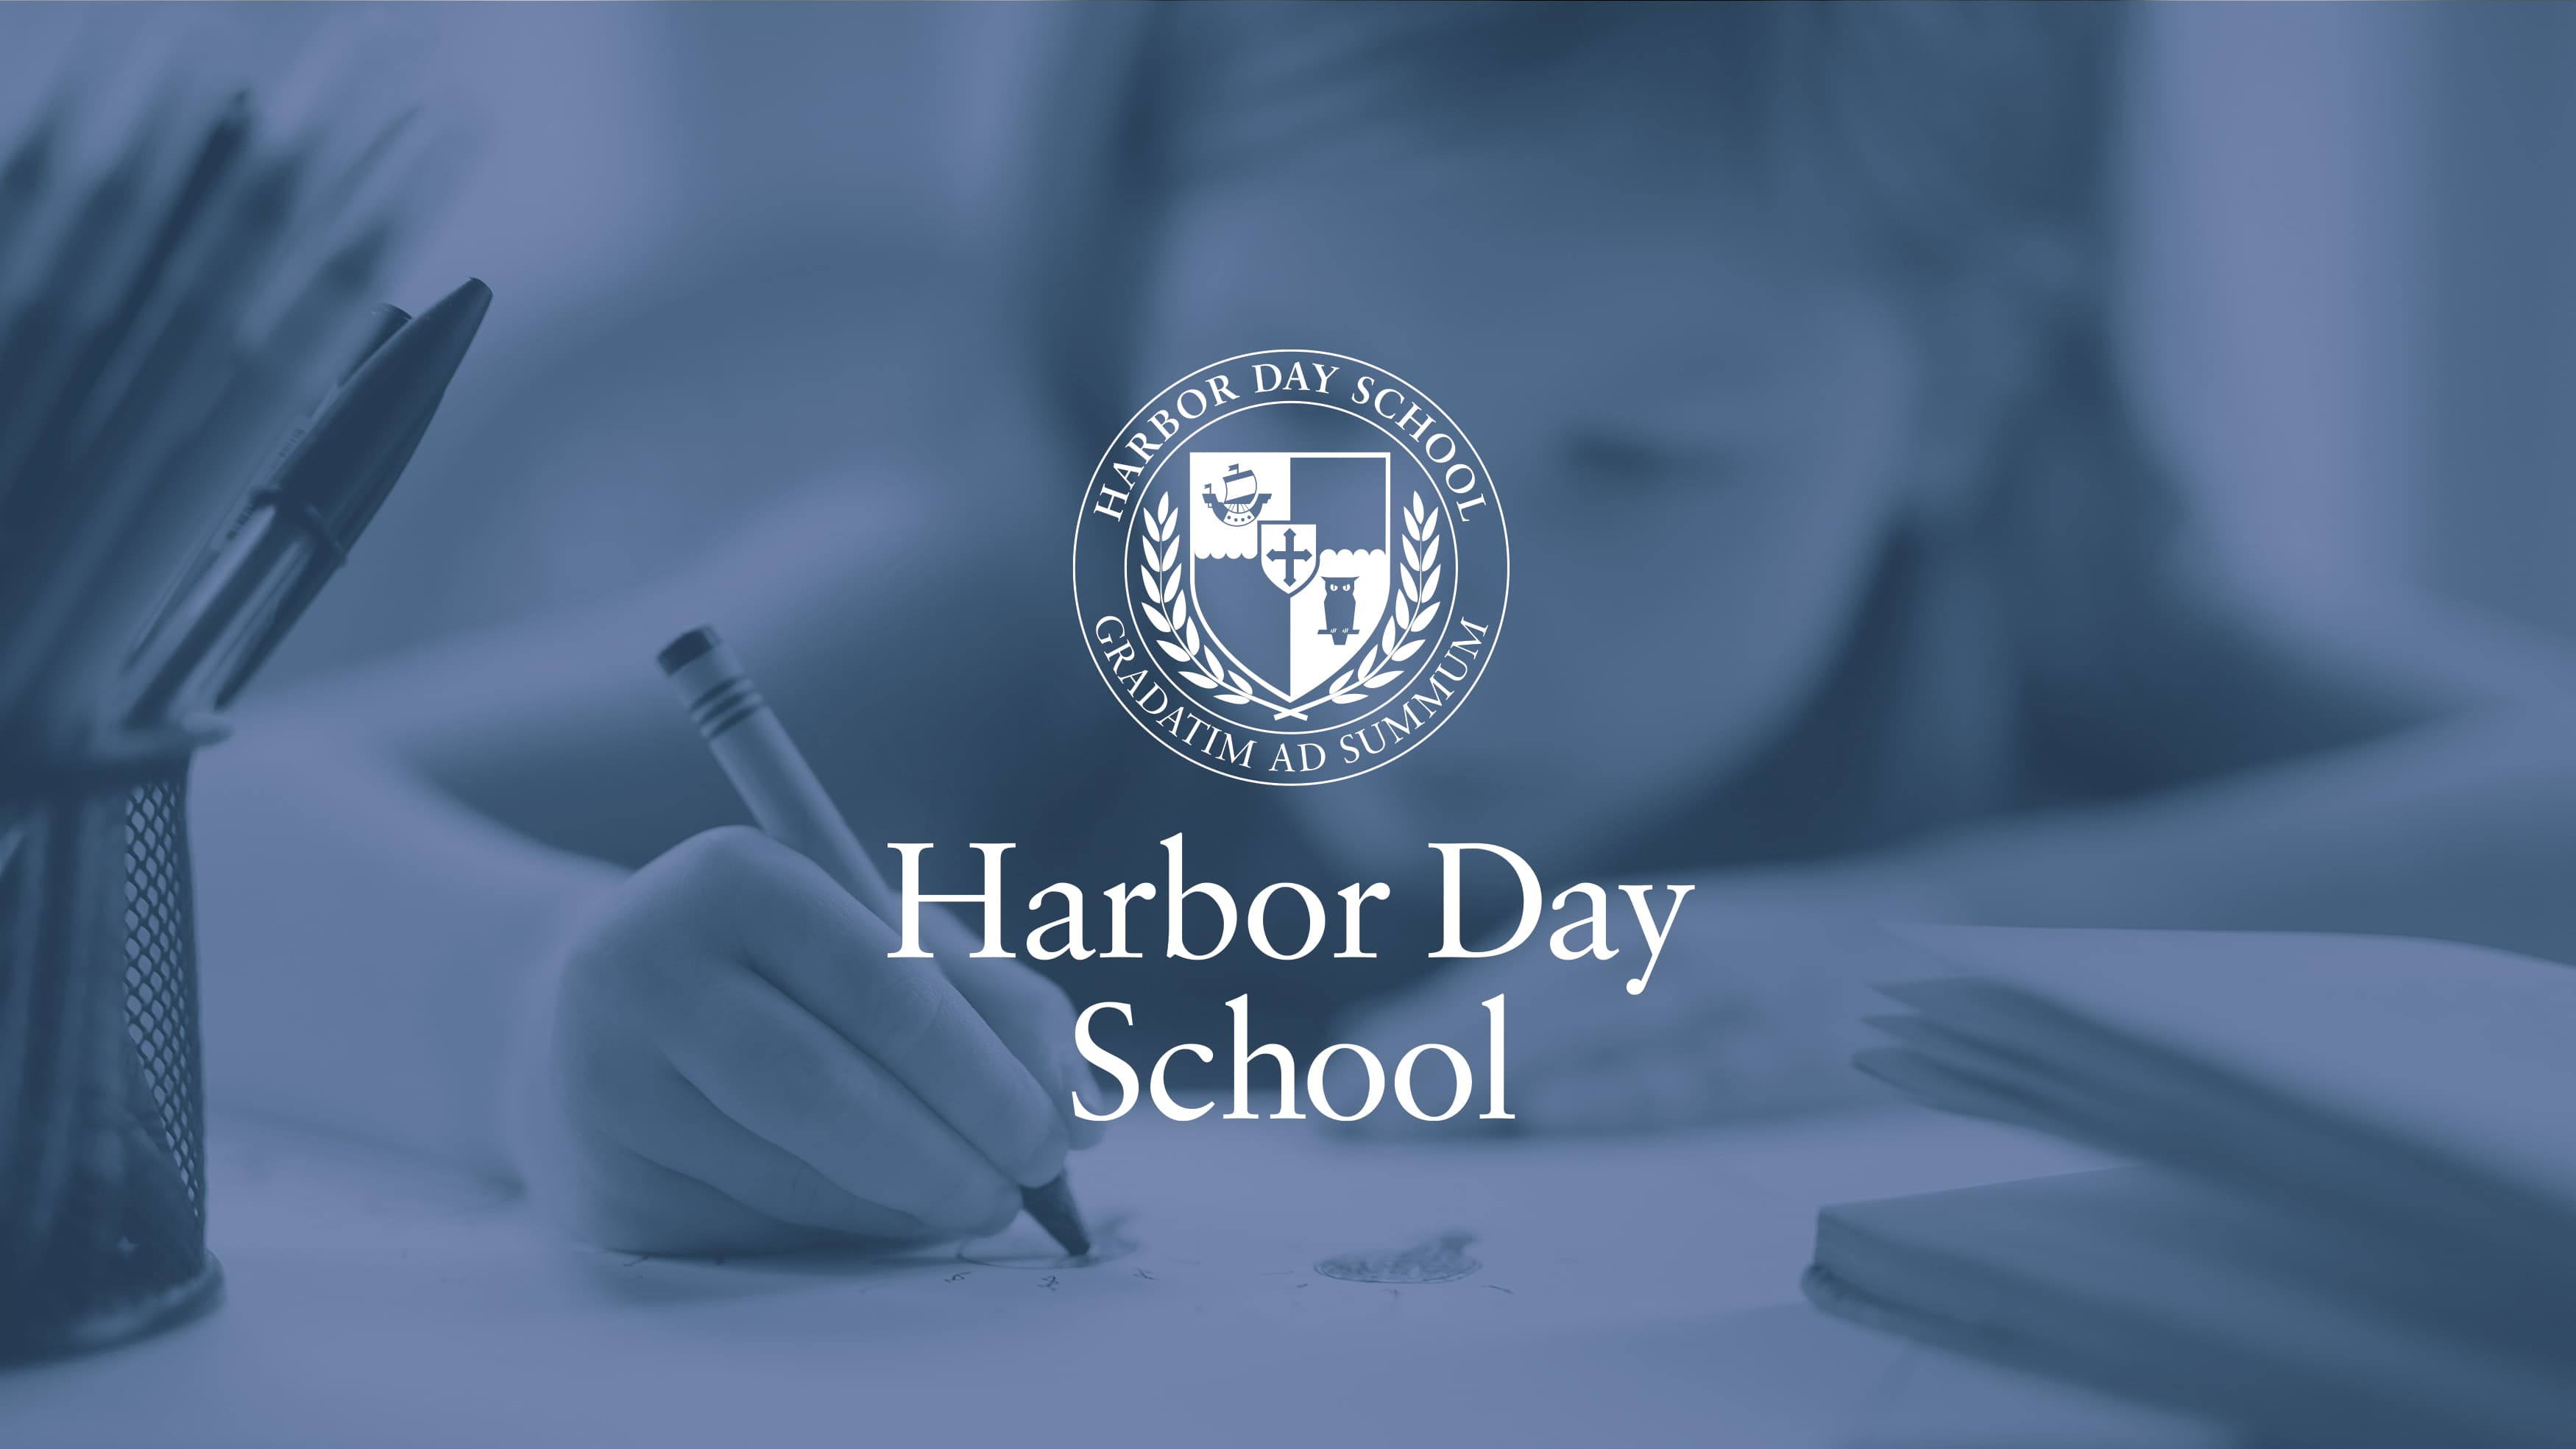 Harbor Day logo on an image of a young girl drawing at school.